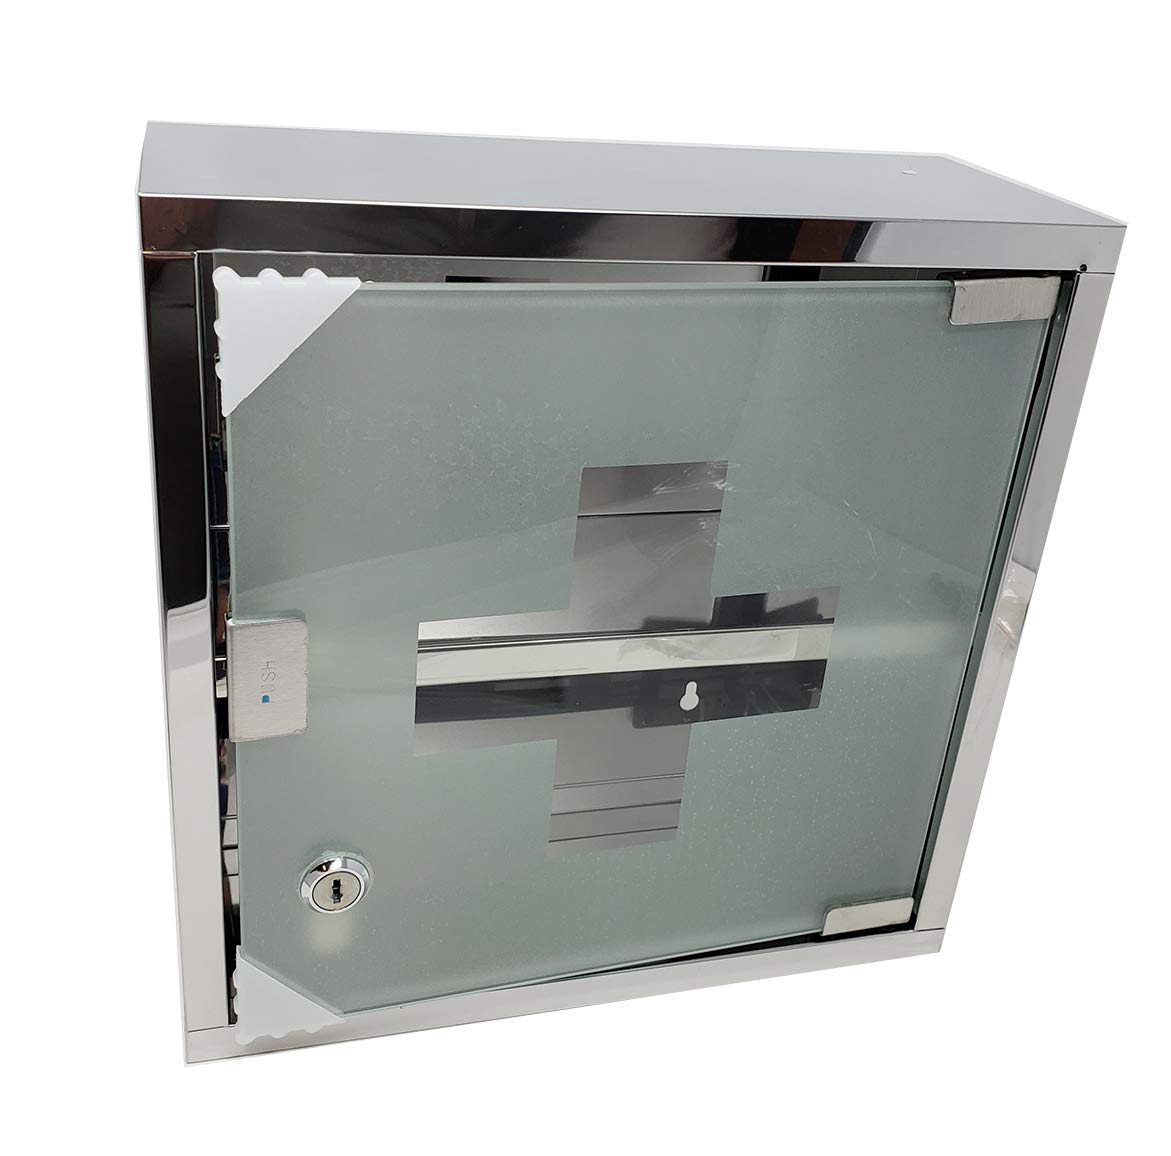 aaco Medicine Cabinet Lockable 2-Tier First Aid Wall Mounted Cabinet, Steel, Chrome 12'' x 12'' x 5''.